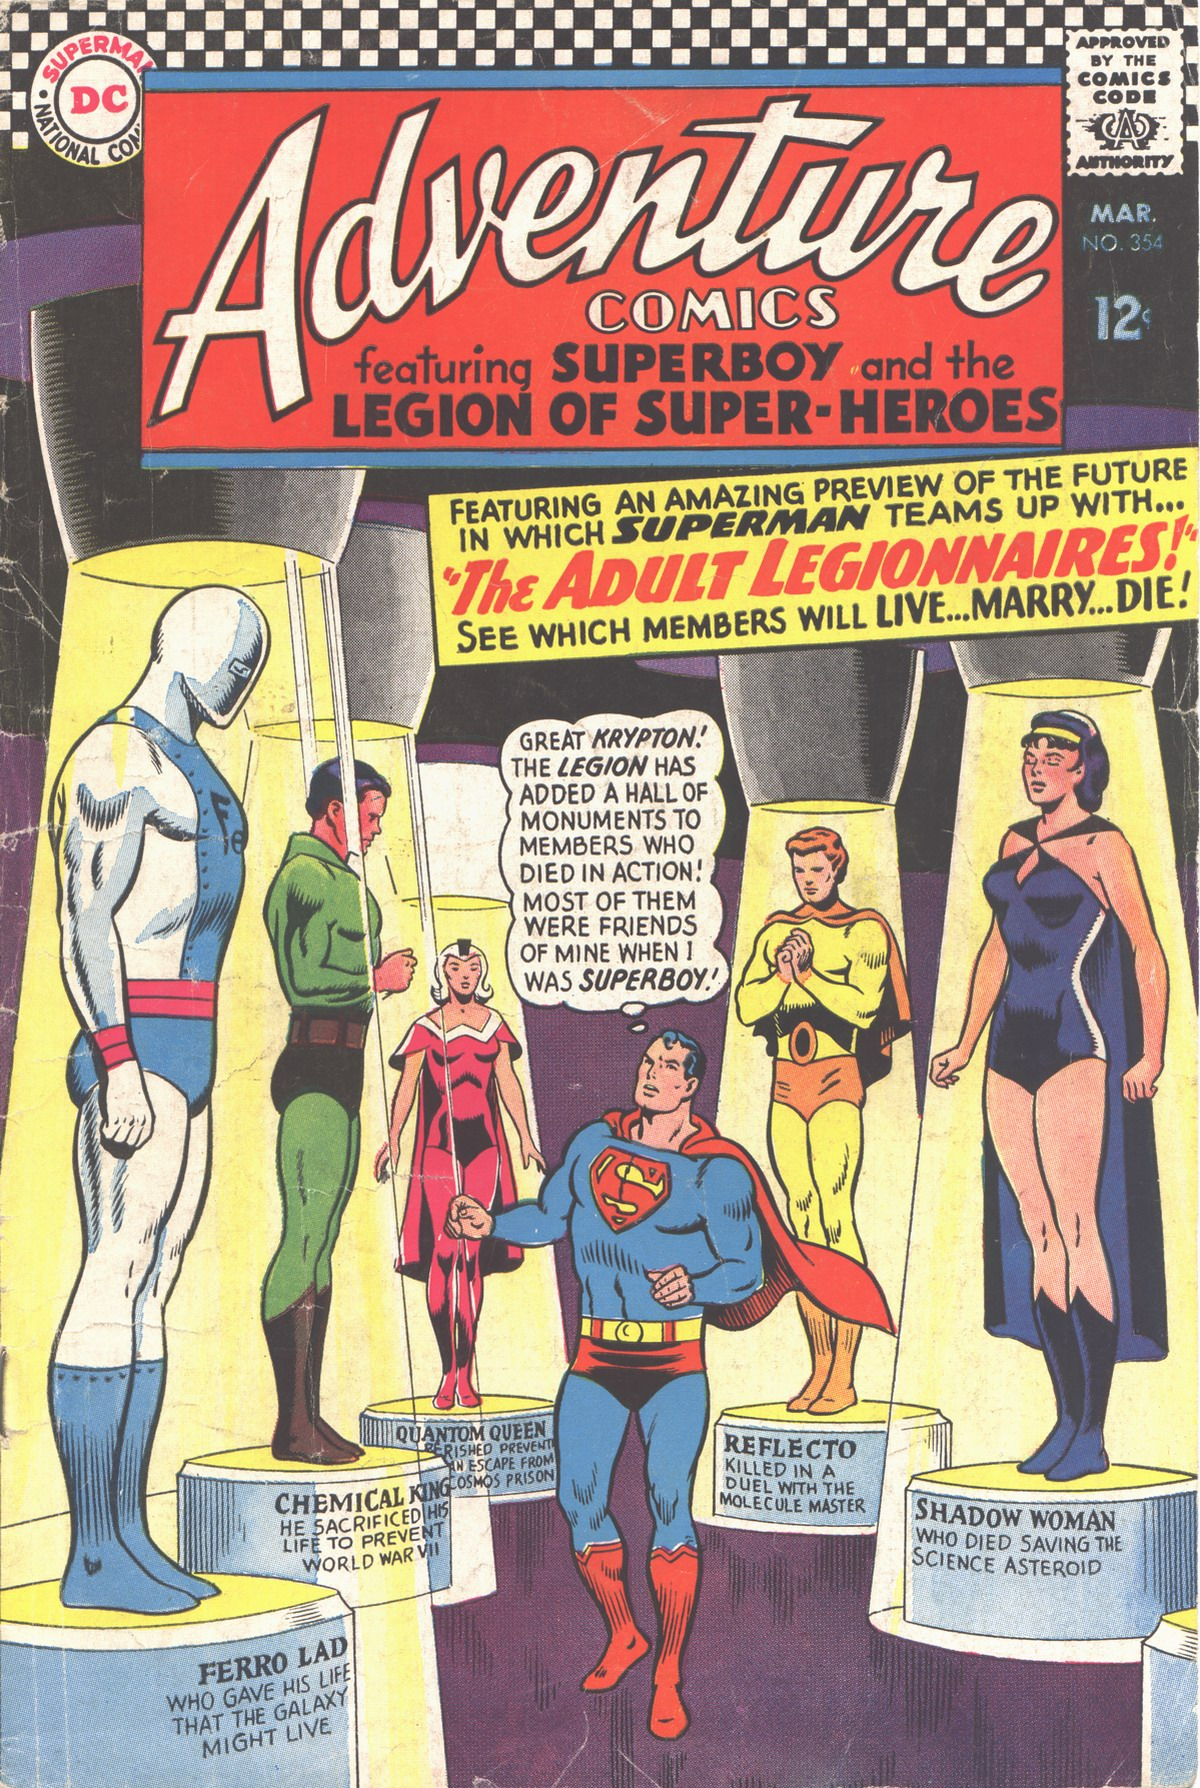 Read online Adventure Comics (1938) comic -  Issue #354 - 1